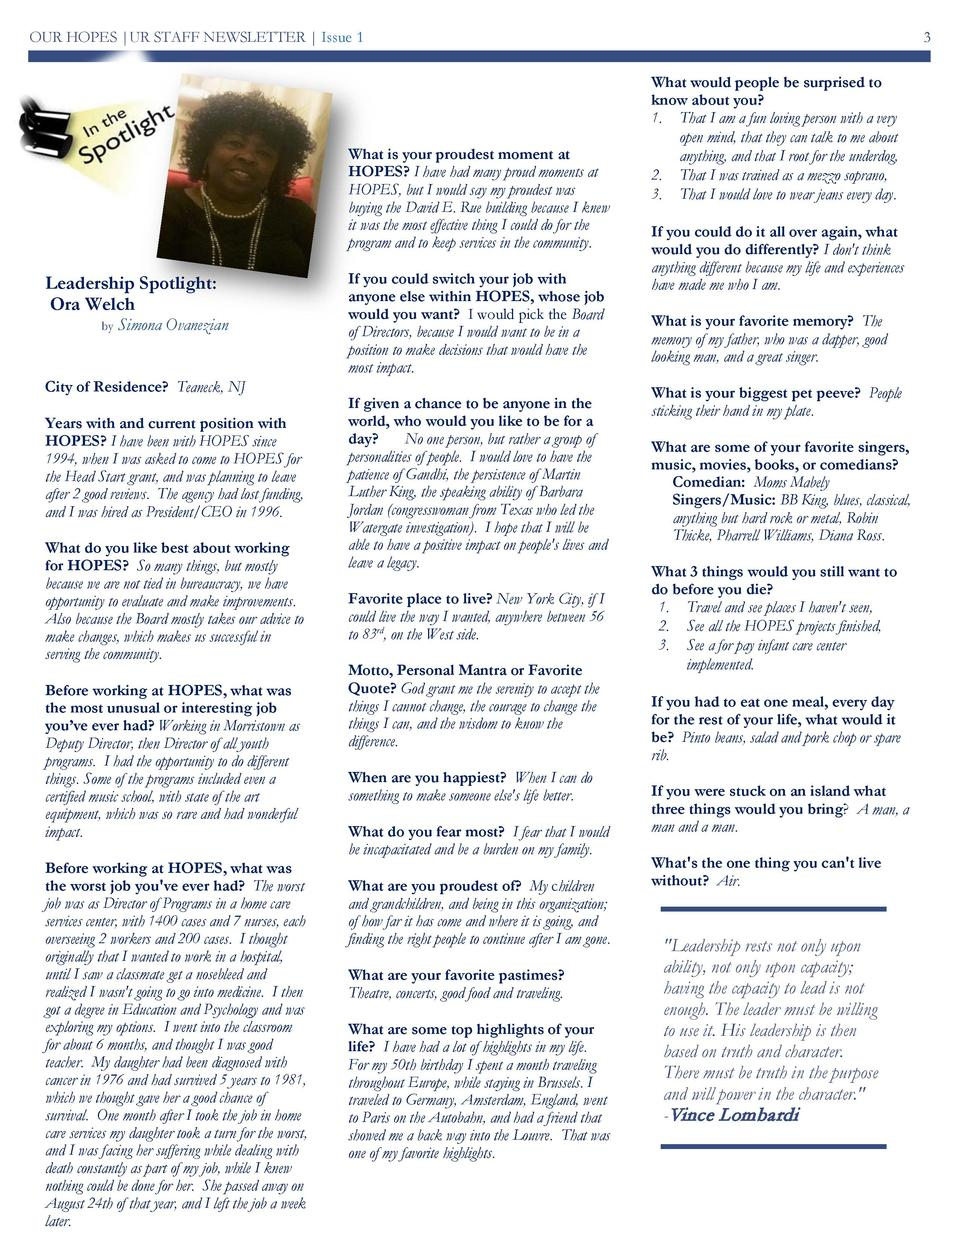 OUR HOPES  UR STAFF NEWSLETTER   Issue 1  What is your proudest moment at HOPES  I have had many proud moments at HOPES, b...